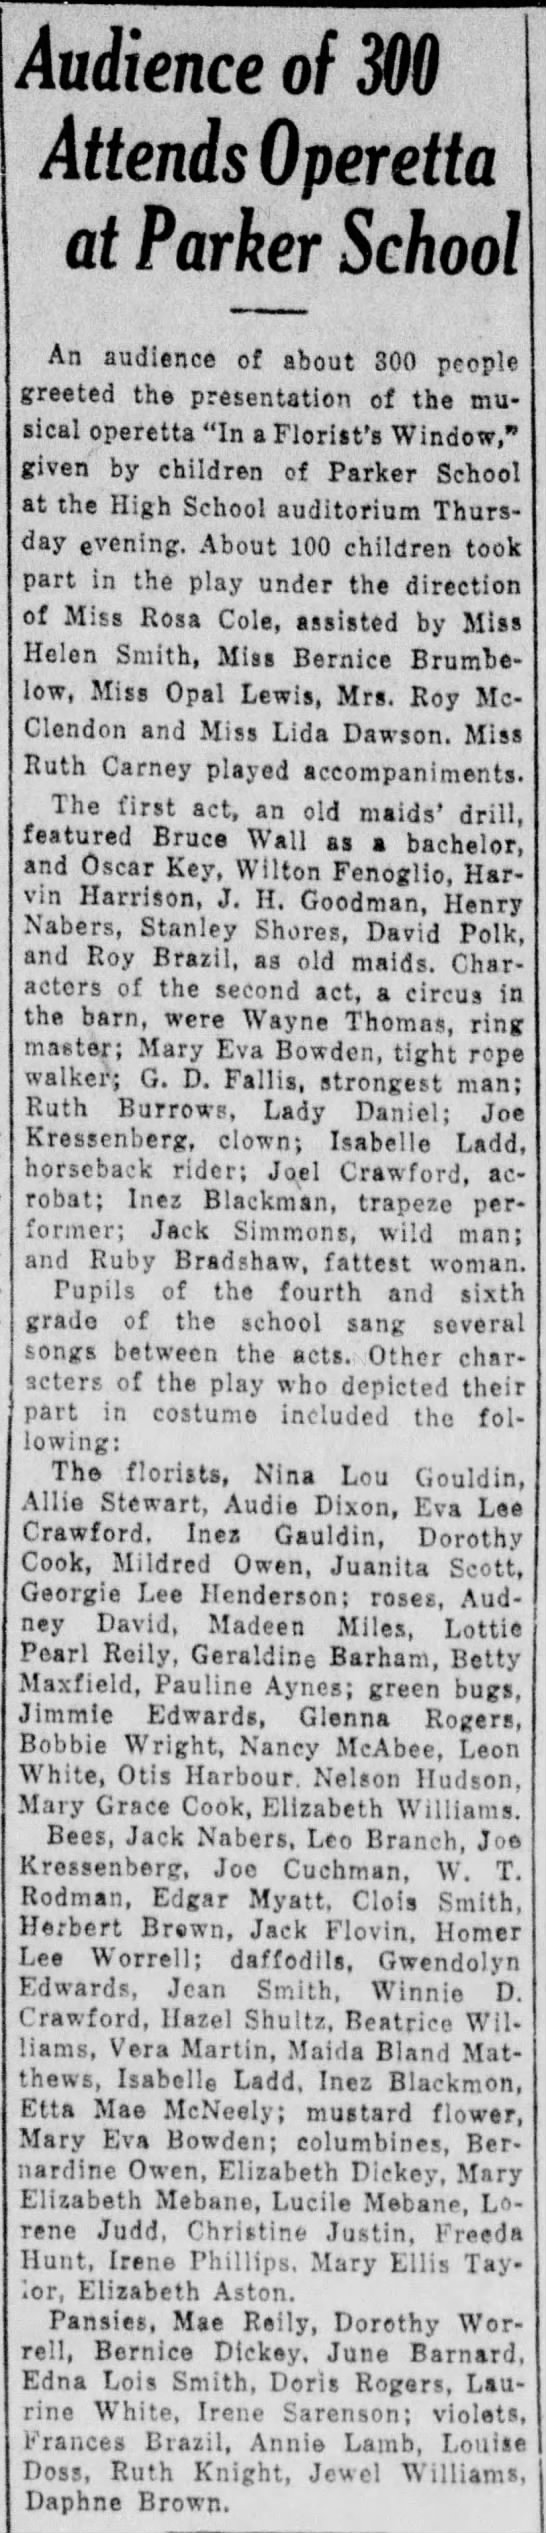 Jack Flovin plays a bee in school opera - Vernon, TX - 5/3/29 - Audience of 300 Attends Operetta at Parker...